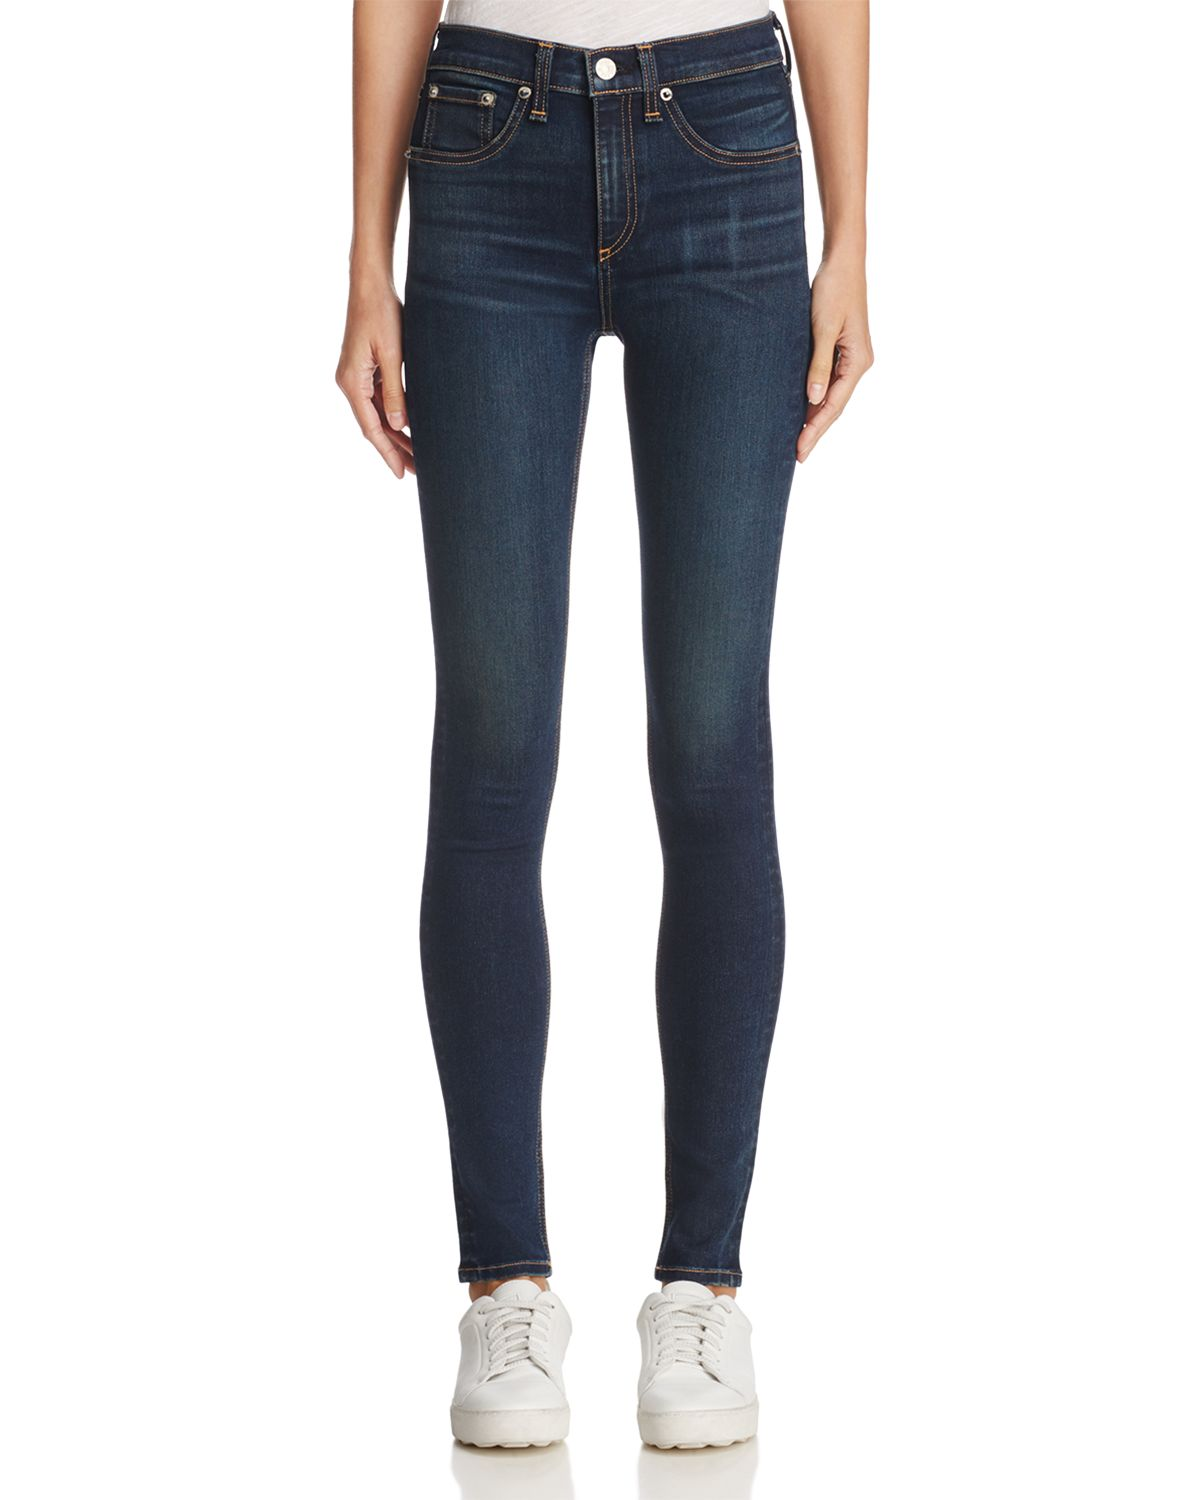 Skinny Jeans In Bedford by Rag & Bone/Jean